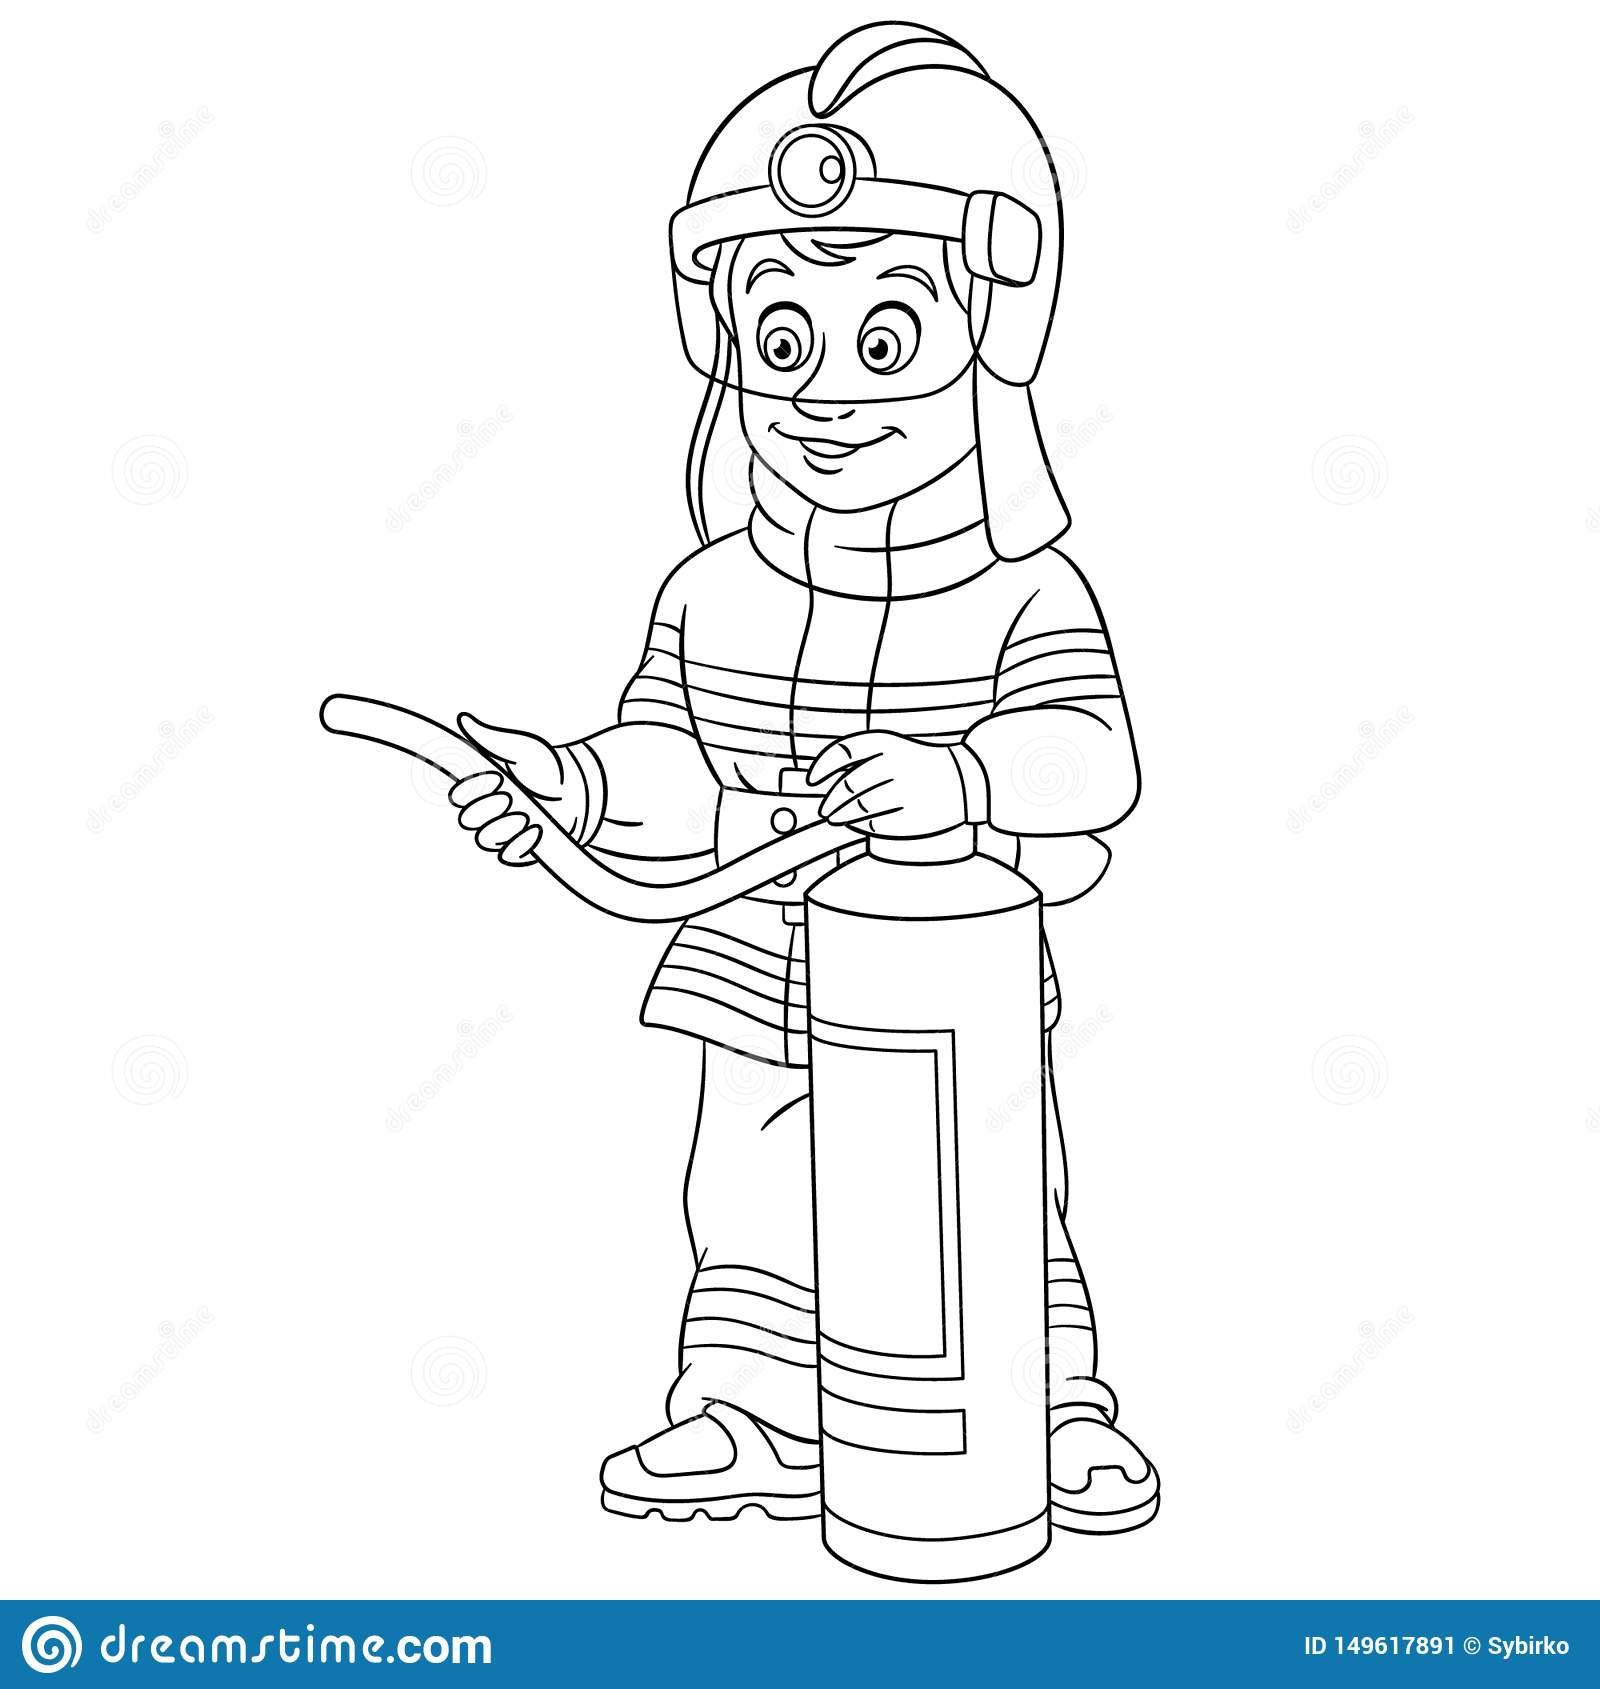 Fireman Sam coloring pages for kids, printable free | coloing ... | 1689x1600